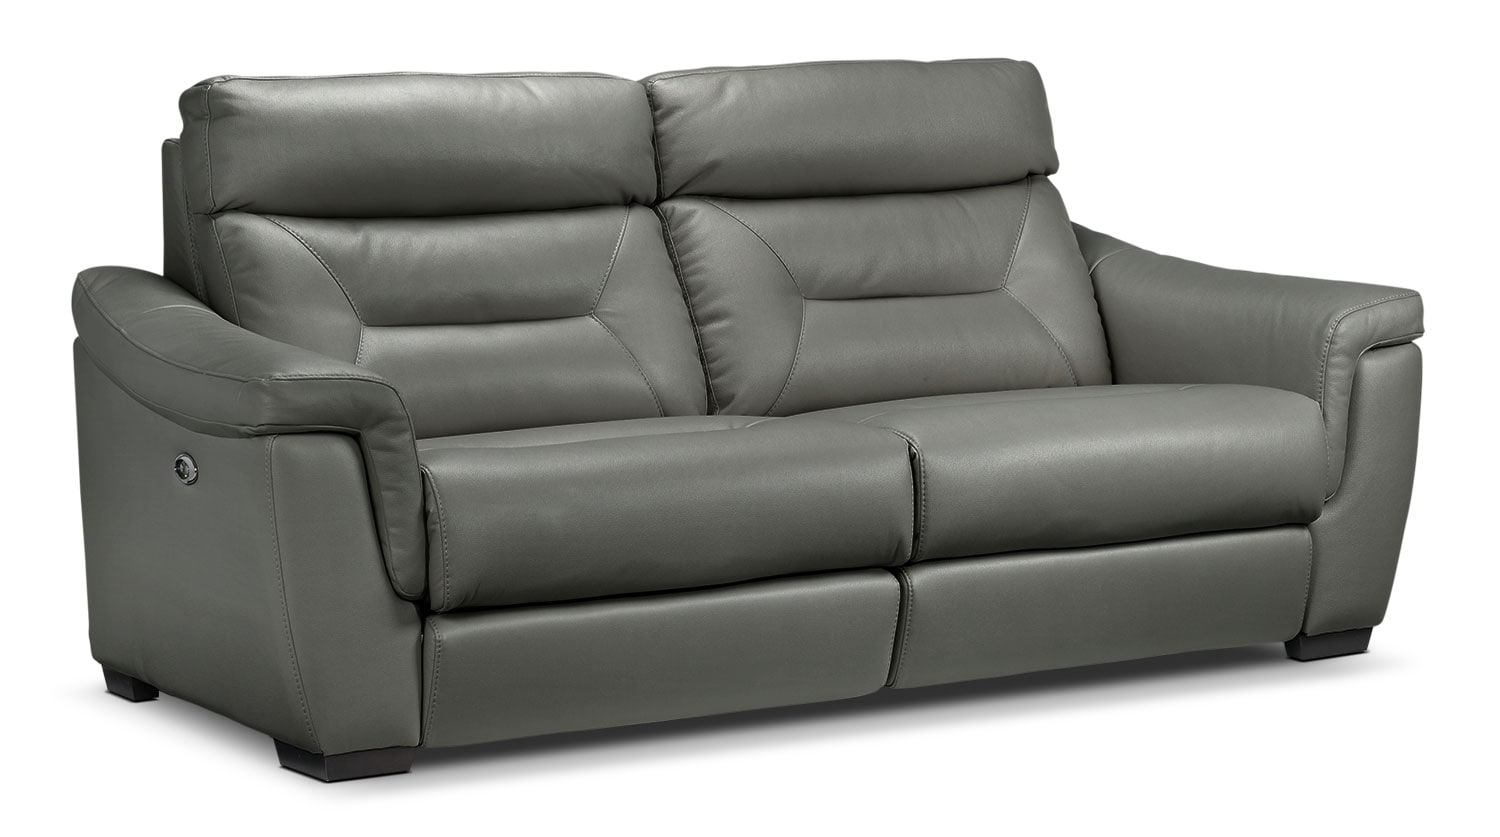 Ralston Power Reclining Sofa - Graphite